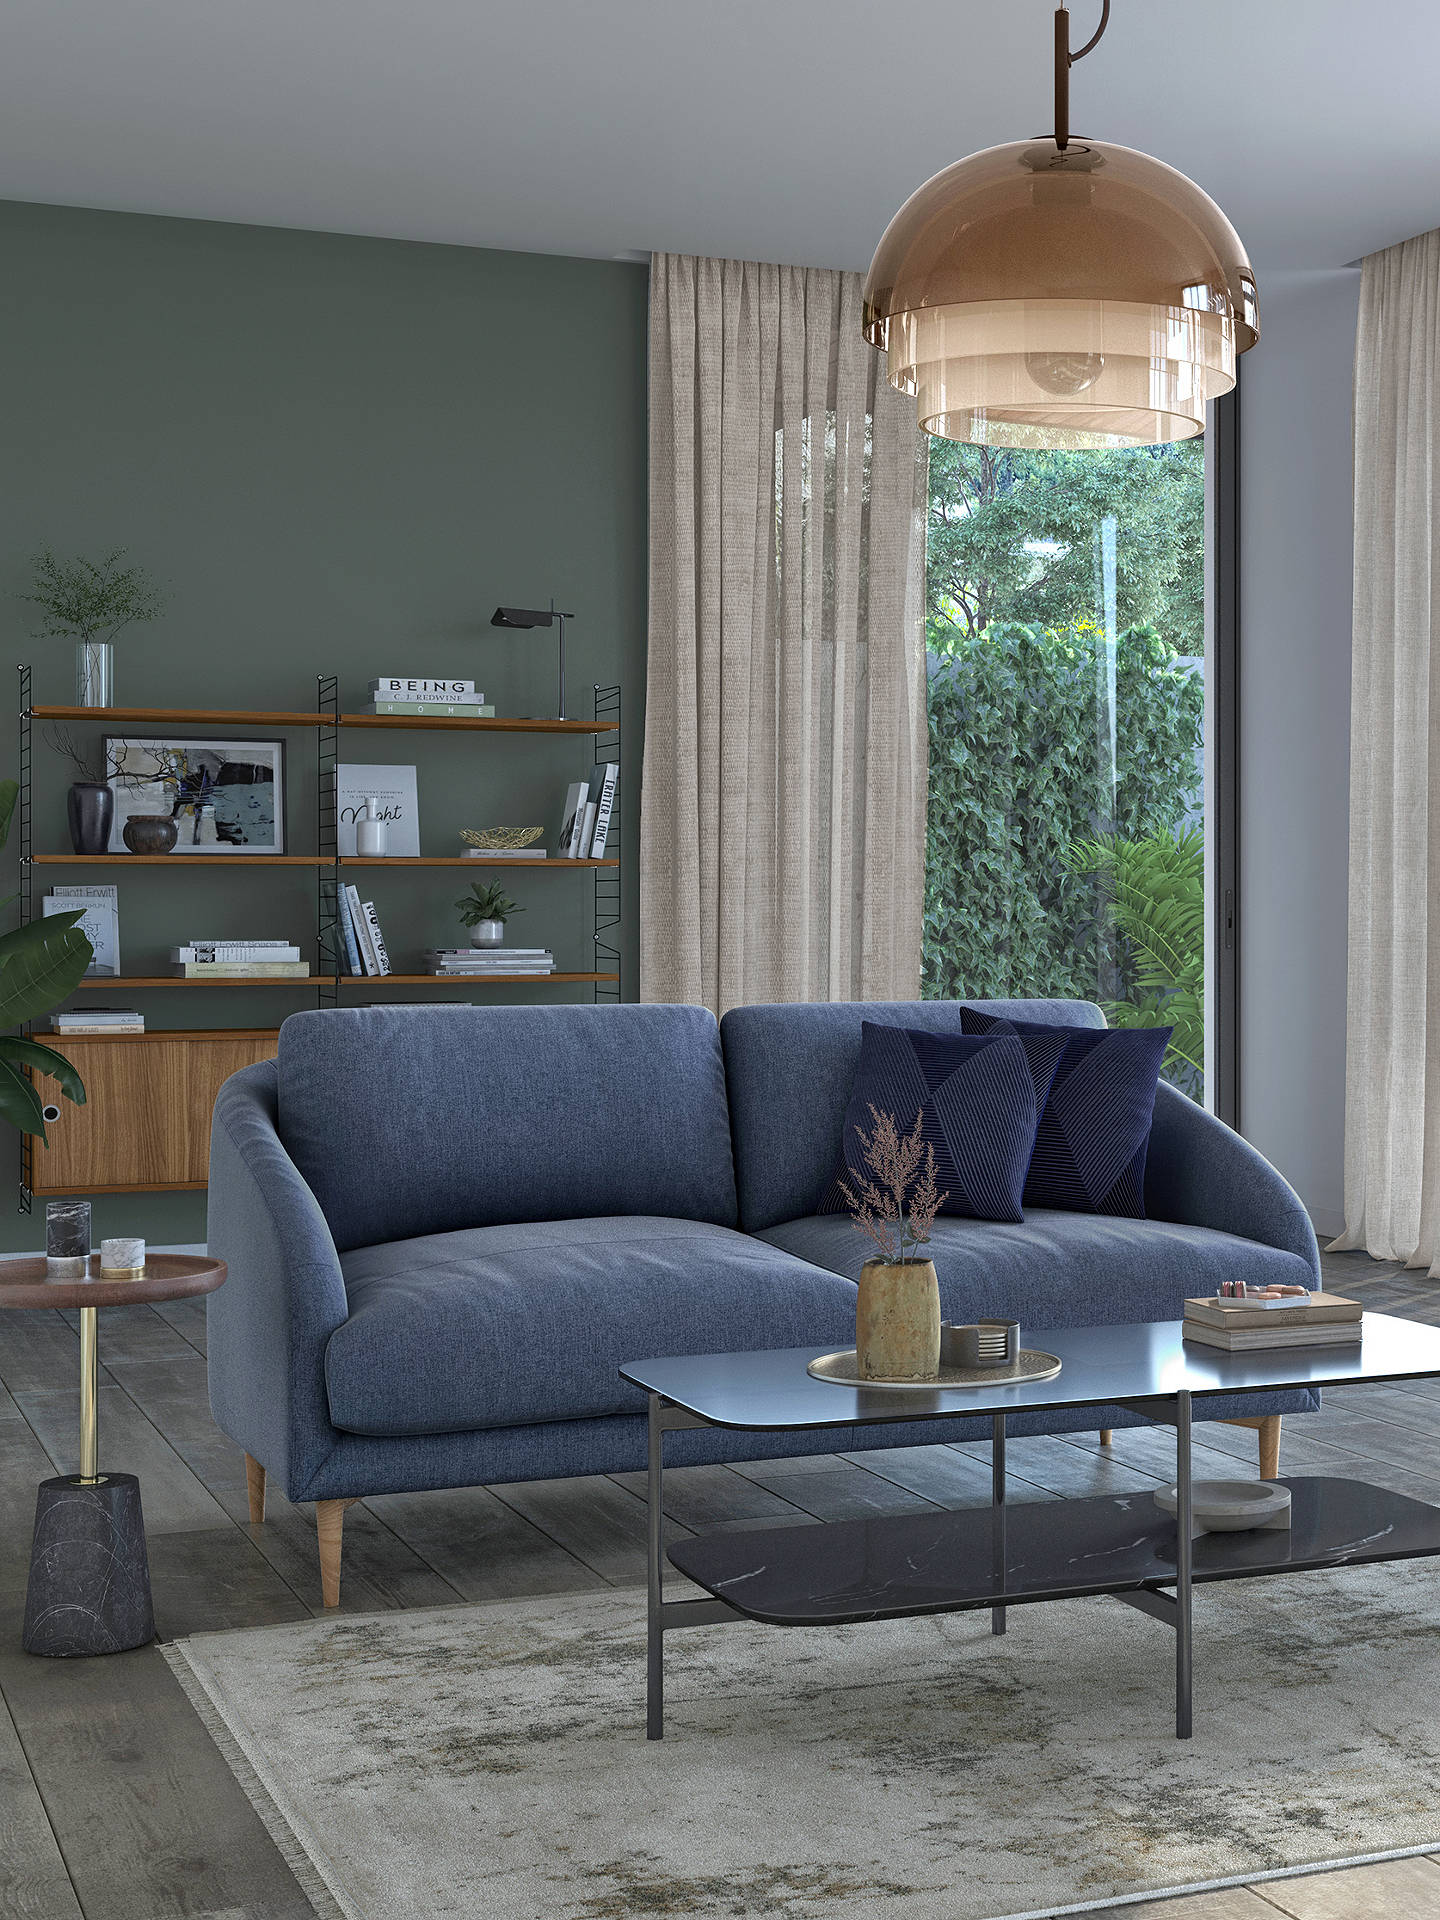 Buy John Lewis & Partners Cape Medium 2 Seater Sofa, Light Leg, Hatton Dark Pacific Online at johnlewis.com